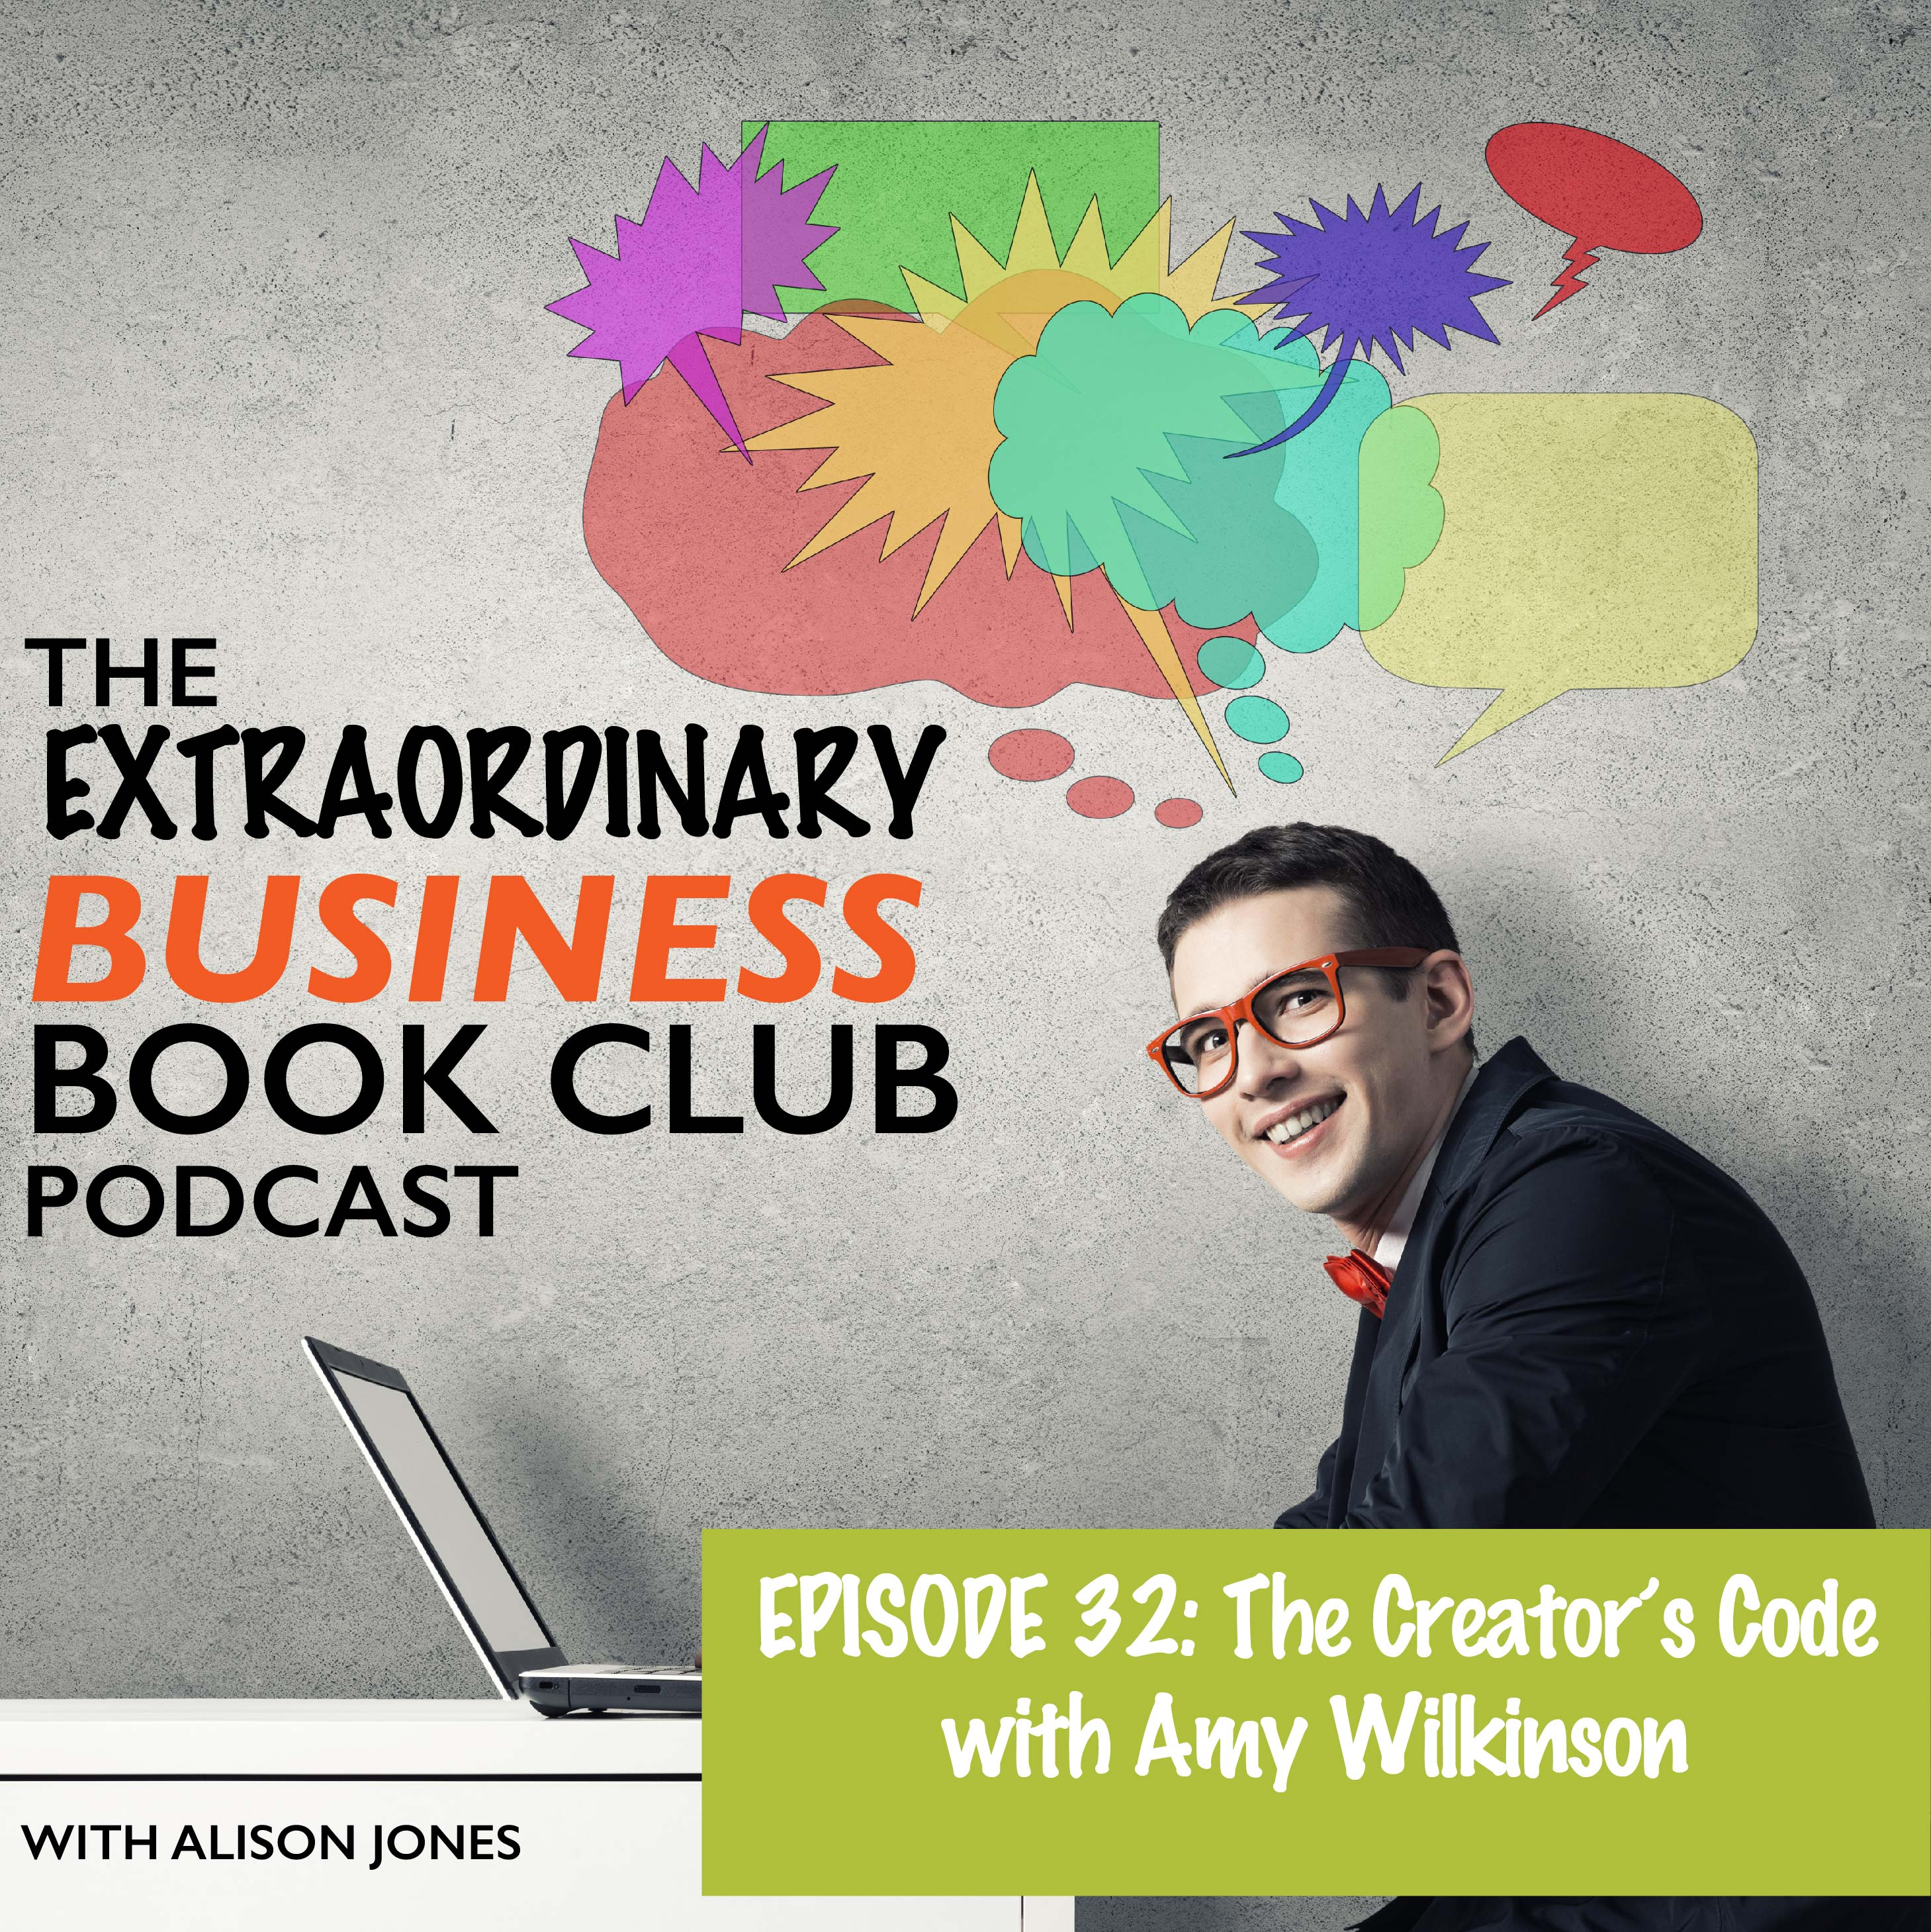 Episode 32 – The Creator's Code with Amy Wilkinson – The